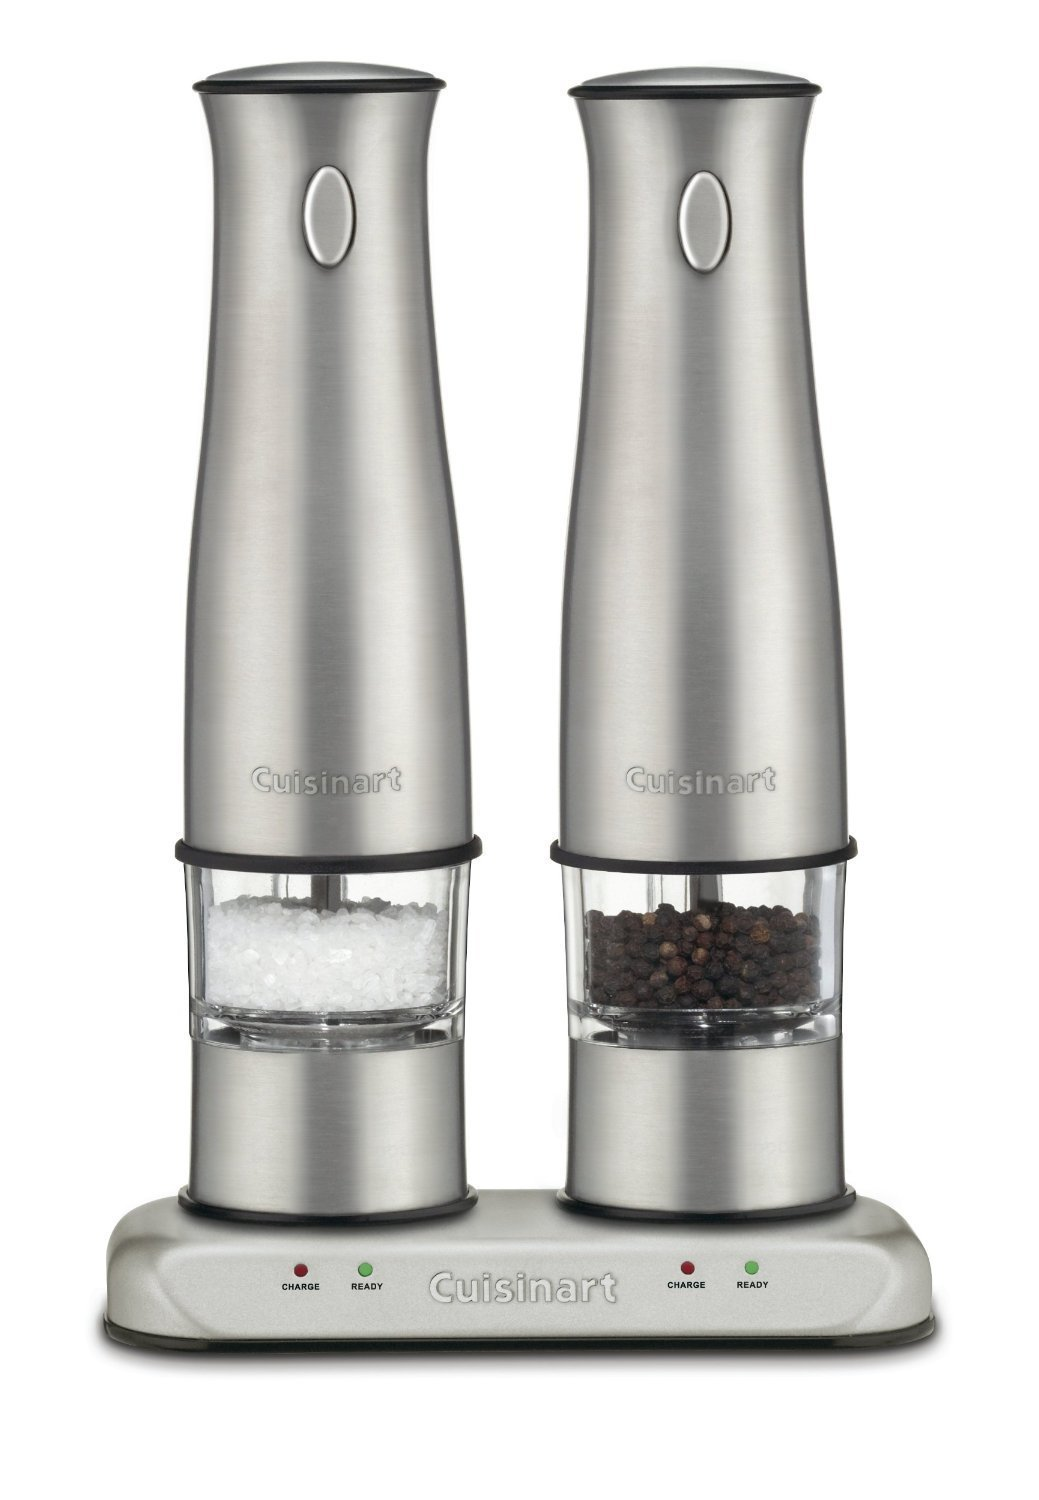 Cuisinart SP-2 Stainless Rechargeable Salt & Pepper Mills, Certified Refurbished by Cuisinart